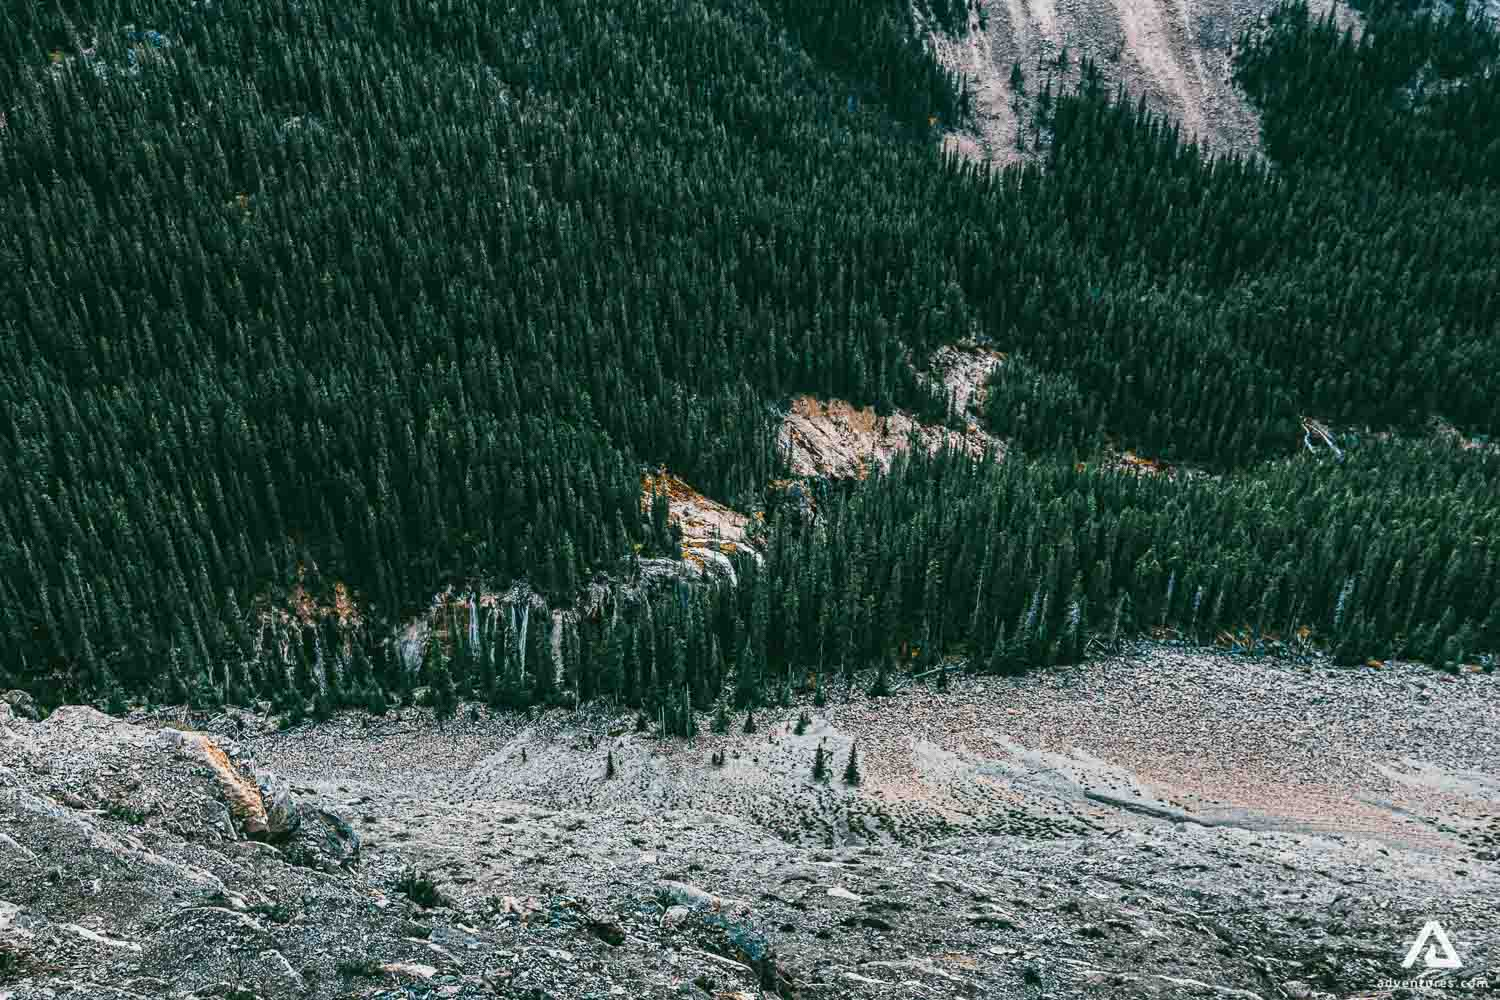 Forests in Alberta